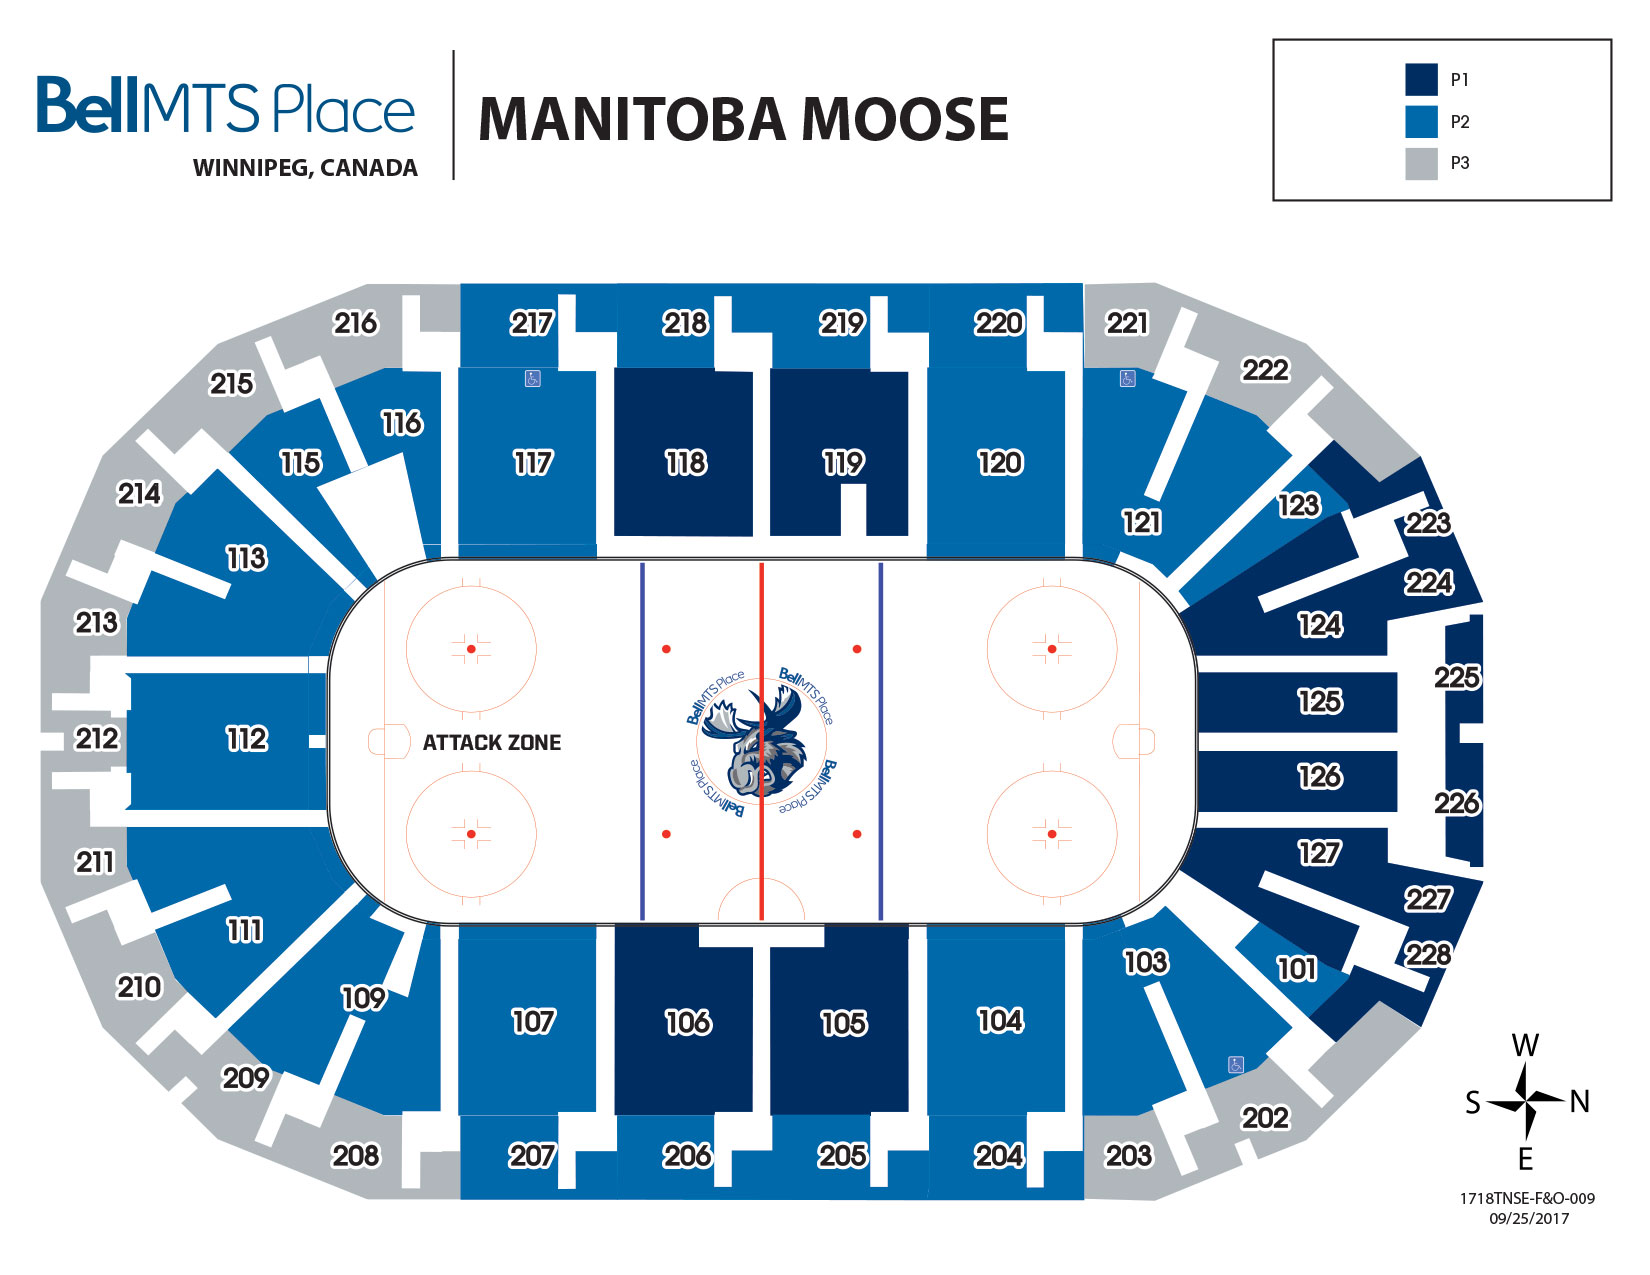 Bell MTS Place - Manitoba Moose Seating